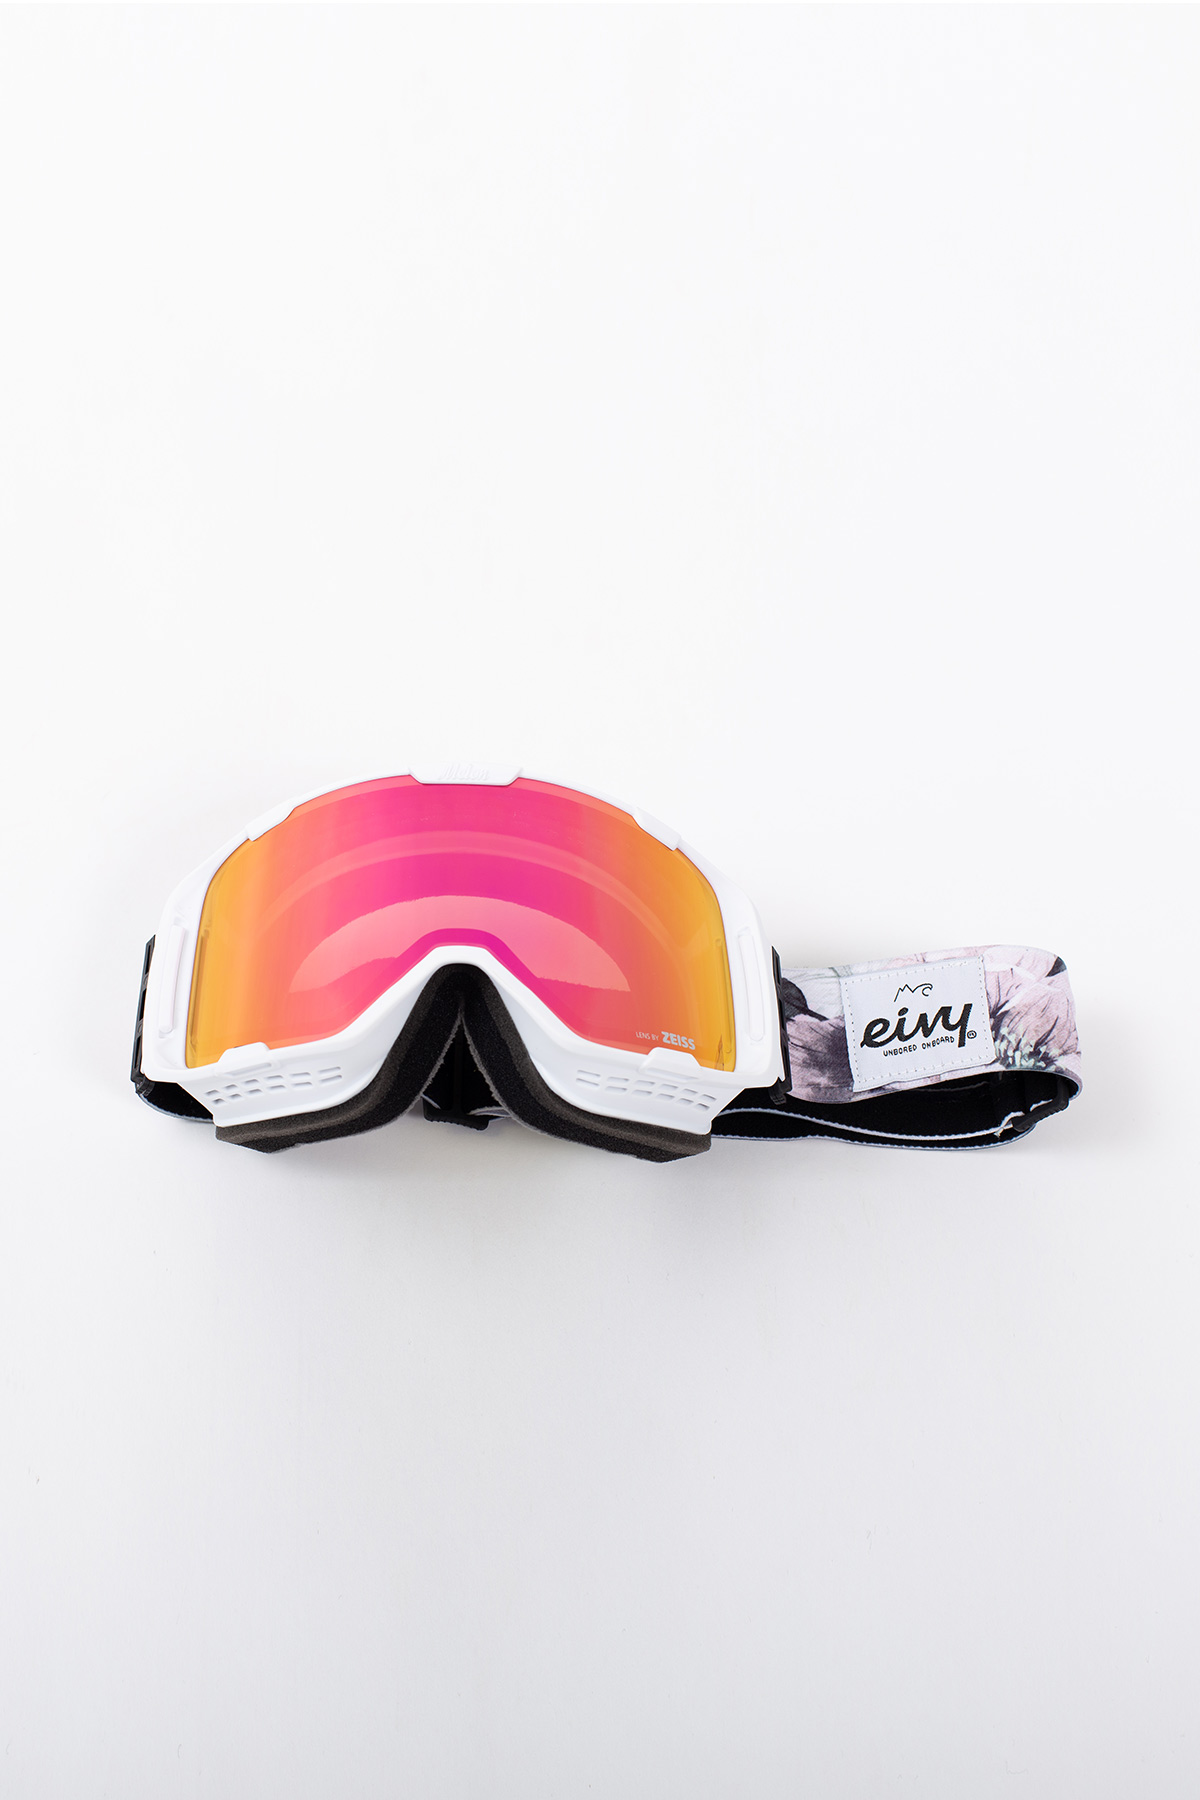 Goggles | Eivy x Melon Optics - Bloom